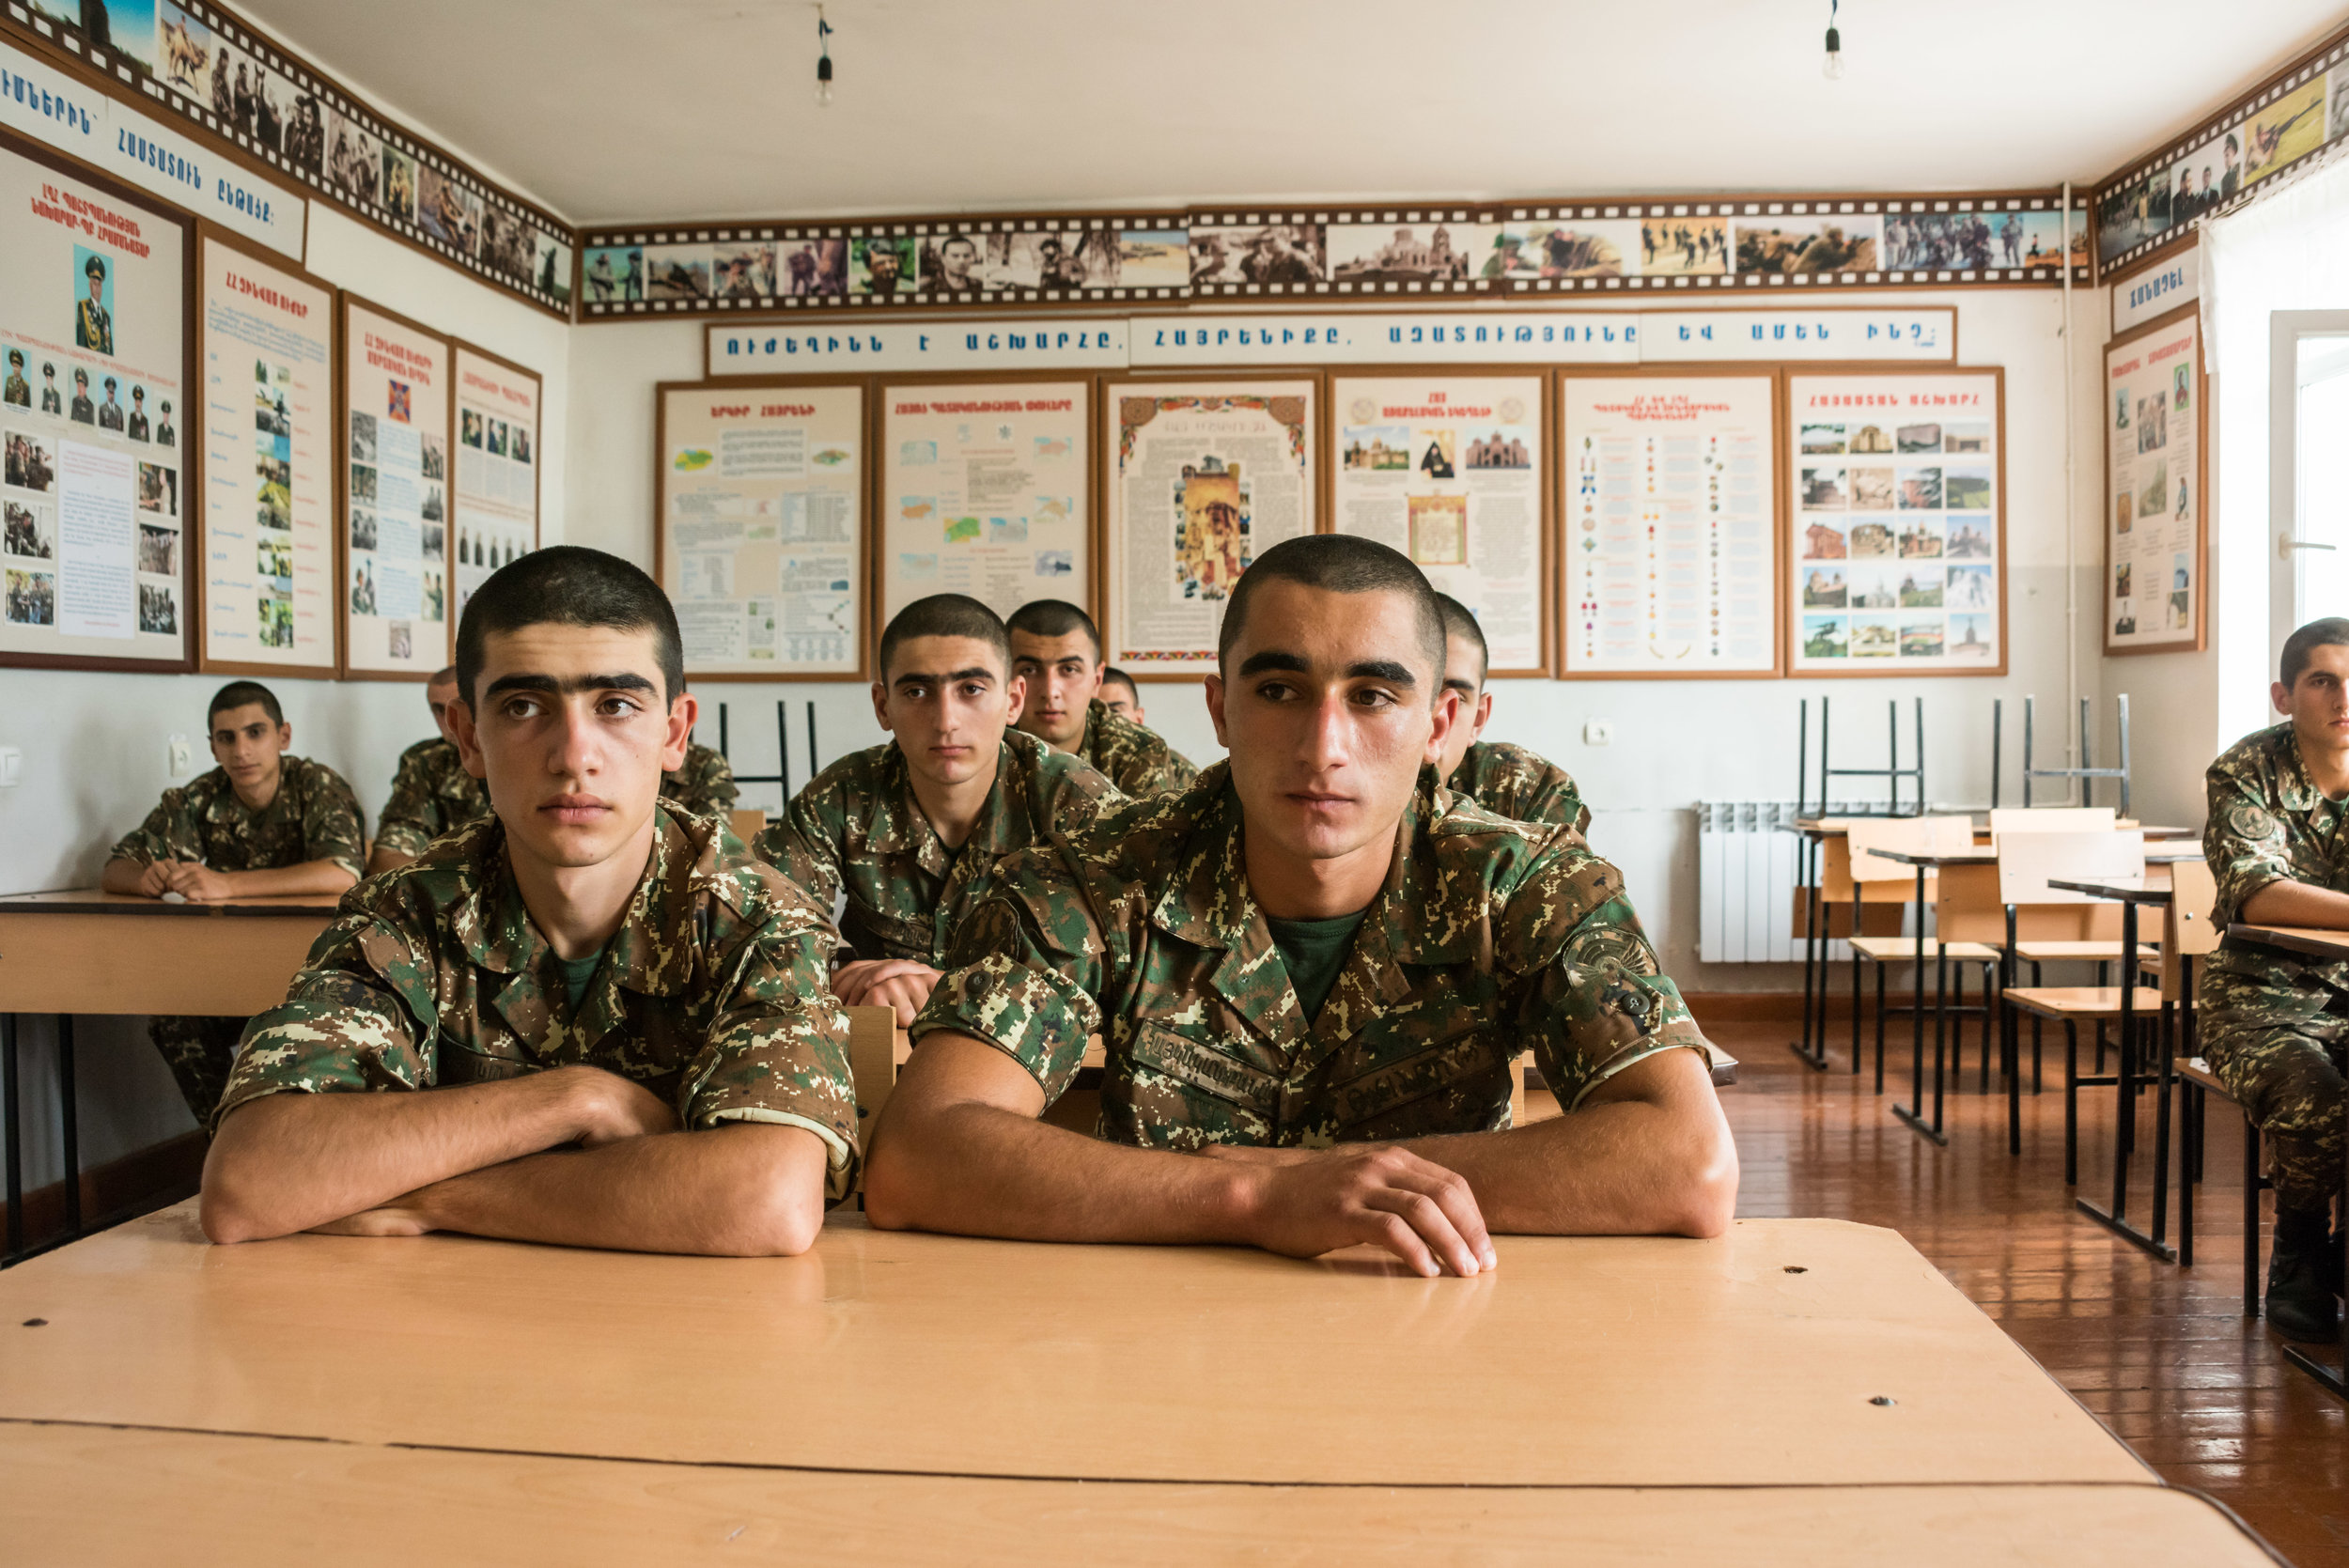 While these recruits are preparing to defend their homeland, they all have plans for their future and the future of Artsakh.      Their aspirations are diverse, from lawyer to programmer to vintner, they will contribute to the growth and success of the country.